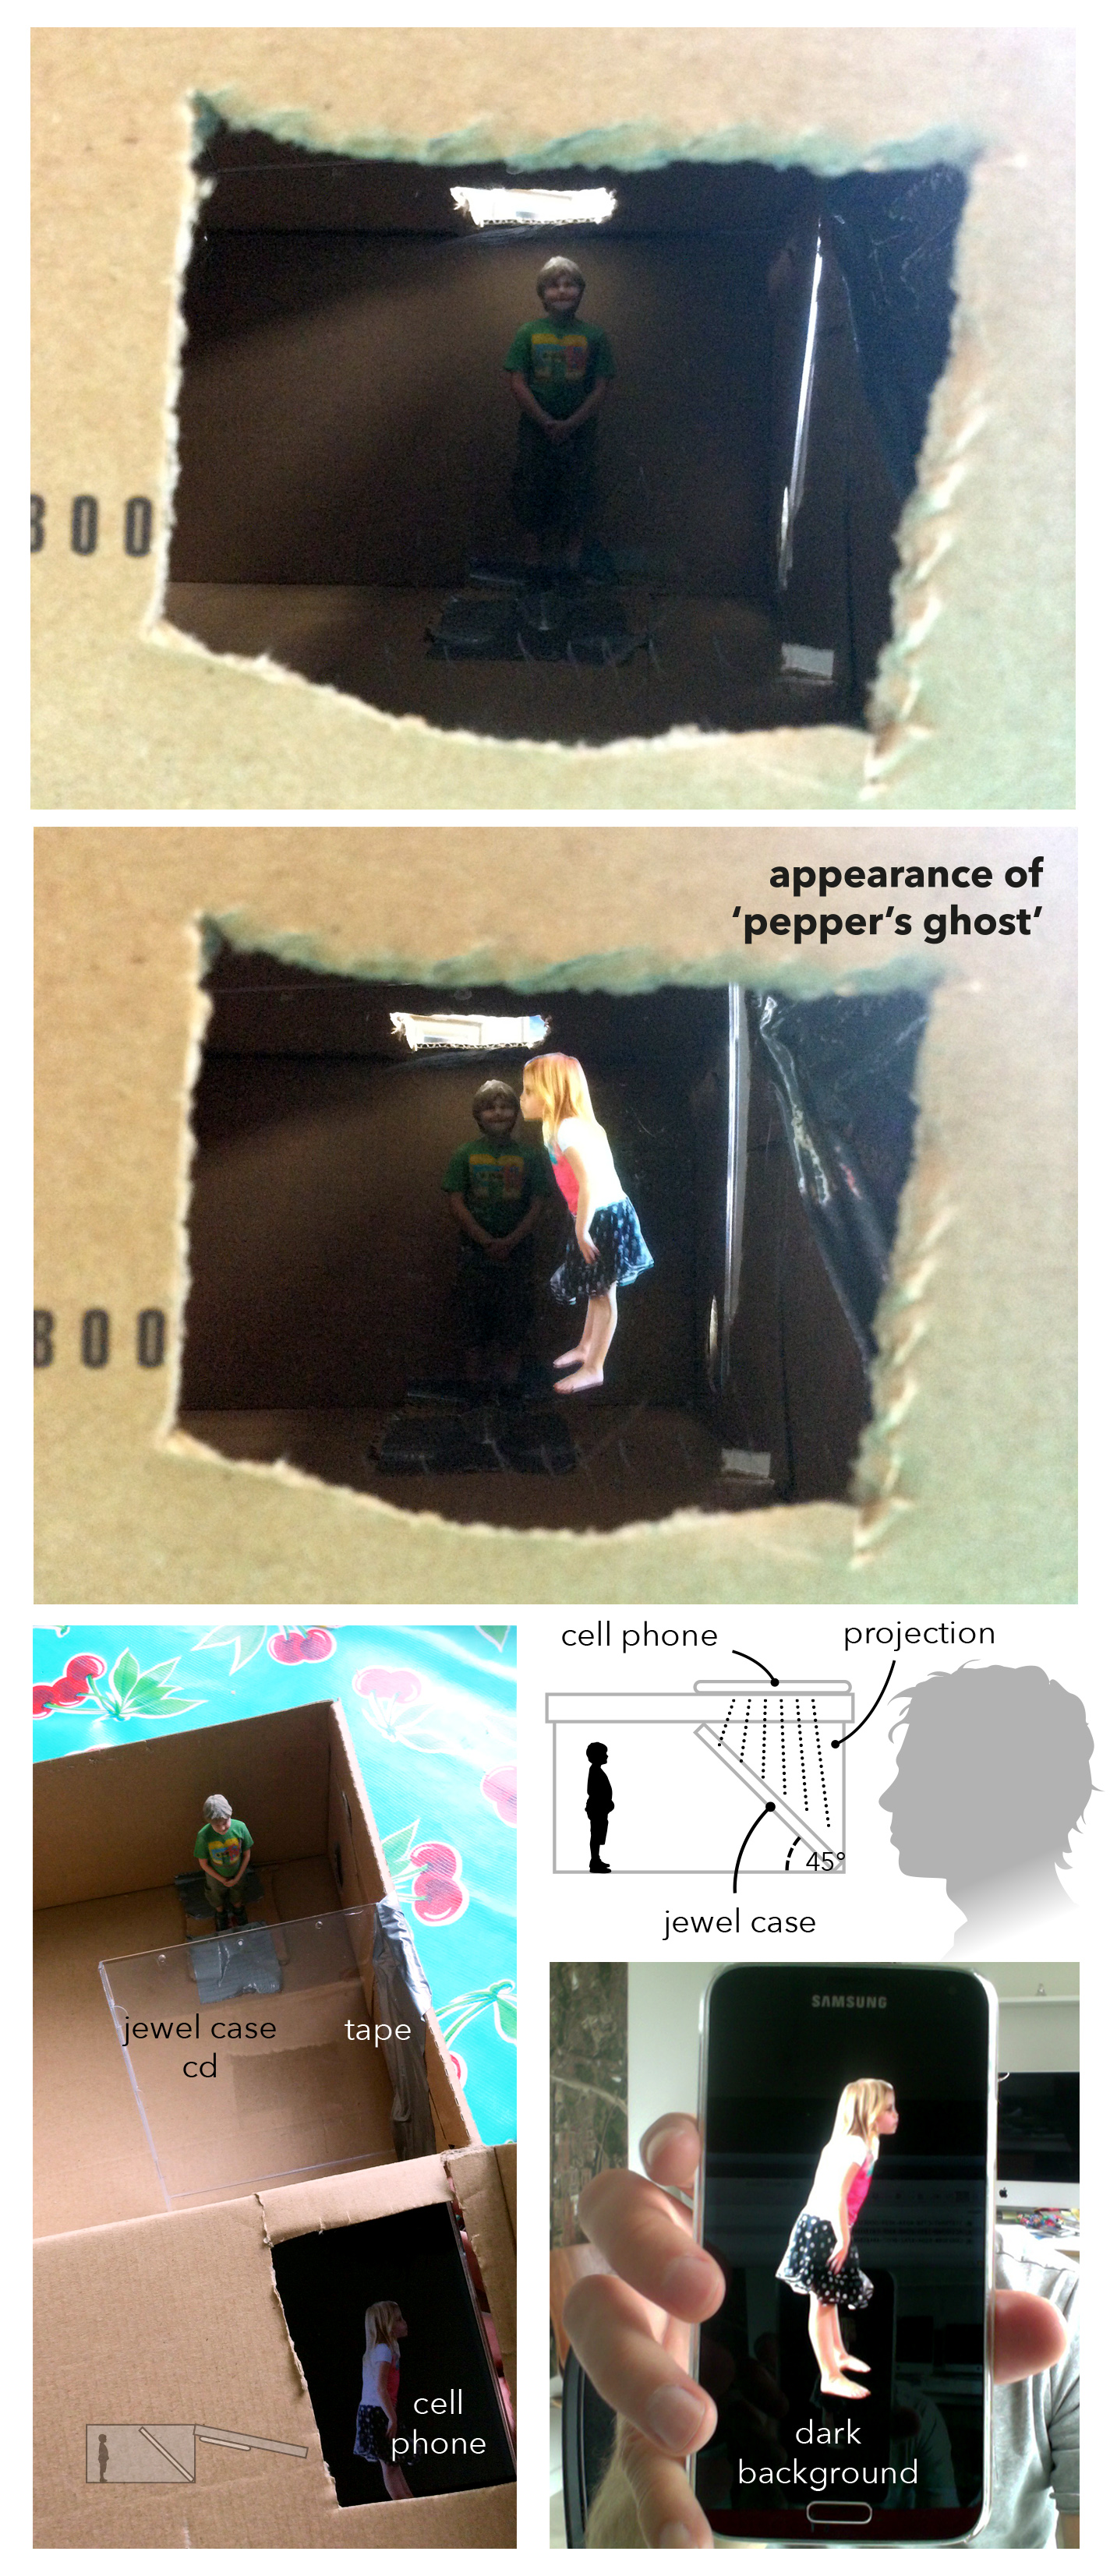 VIZ_Peppers_Ghost_infographic